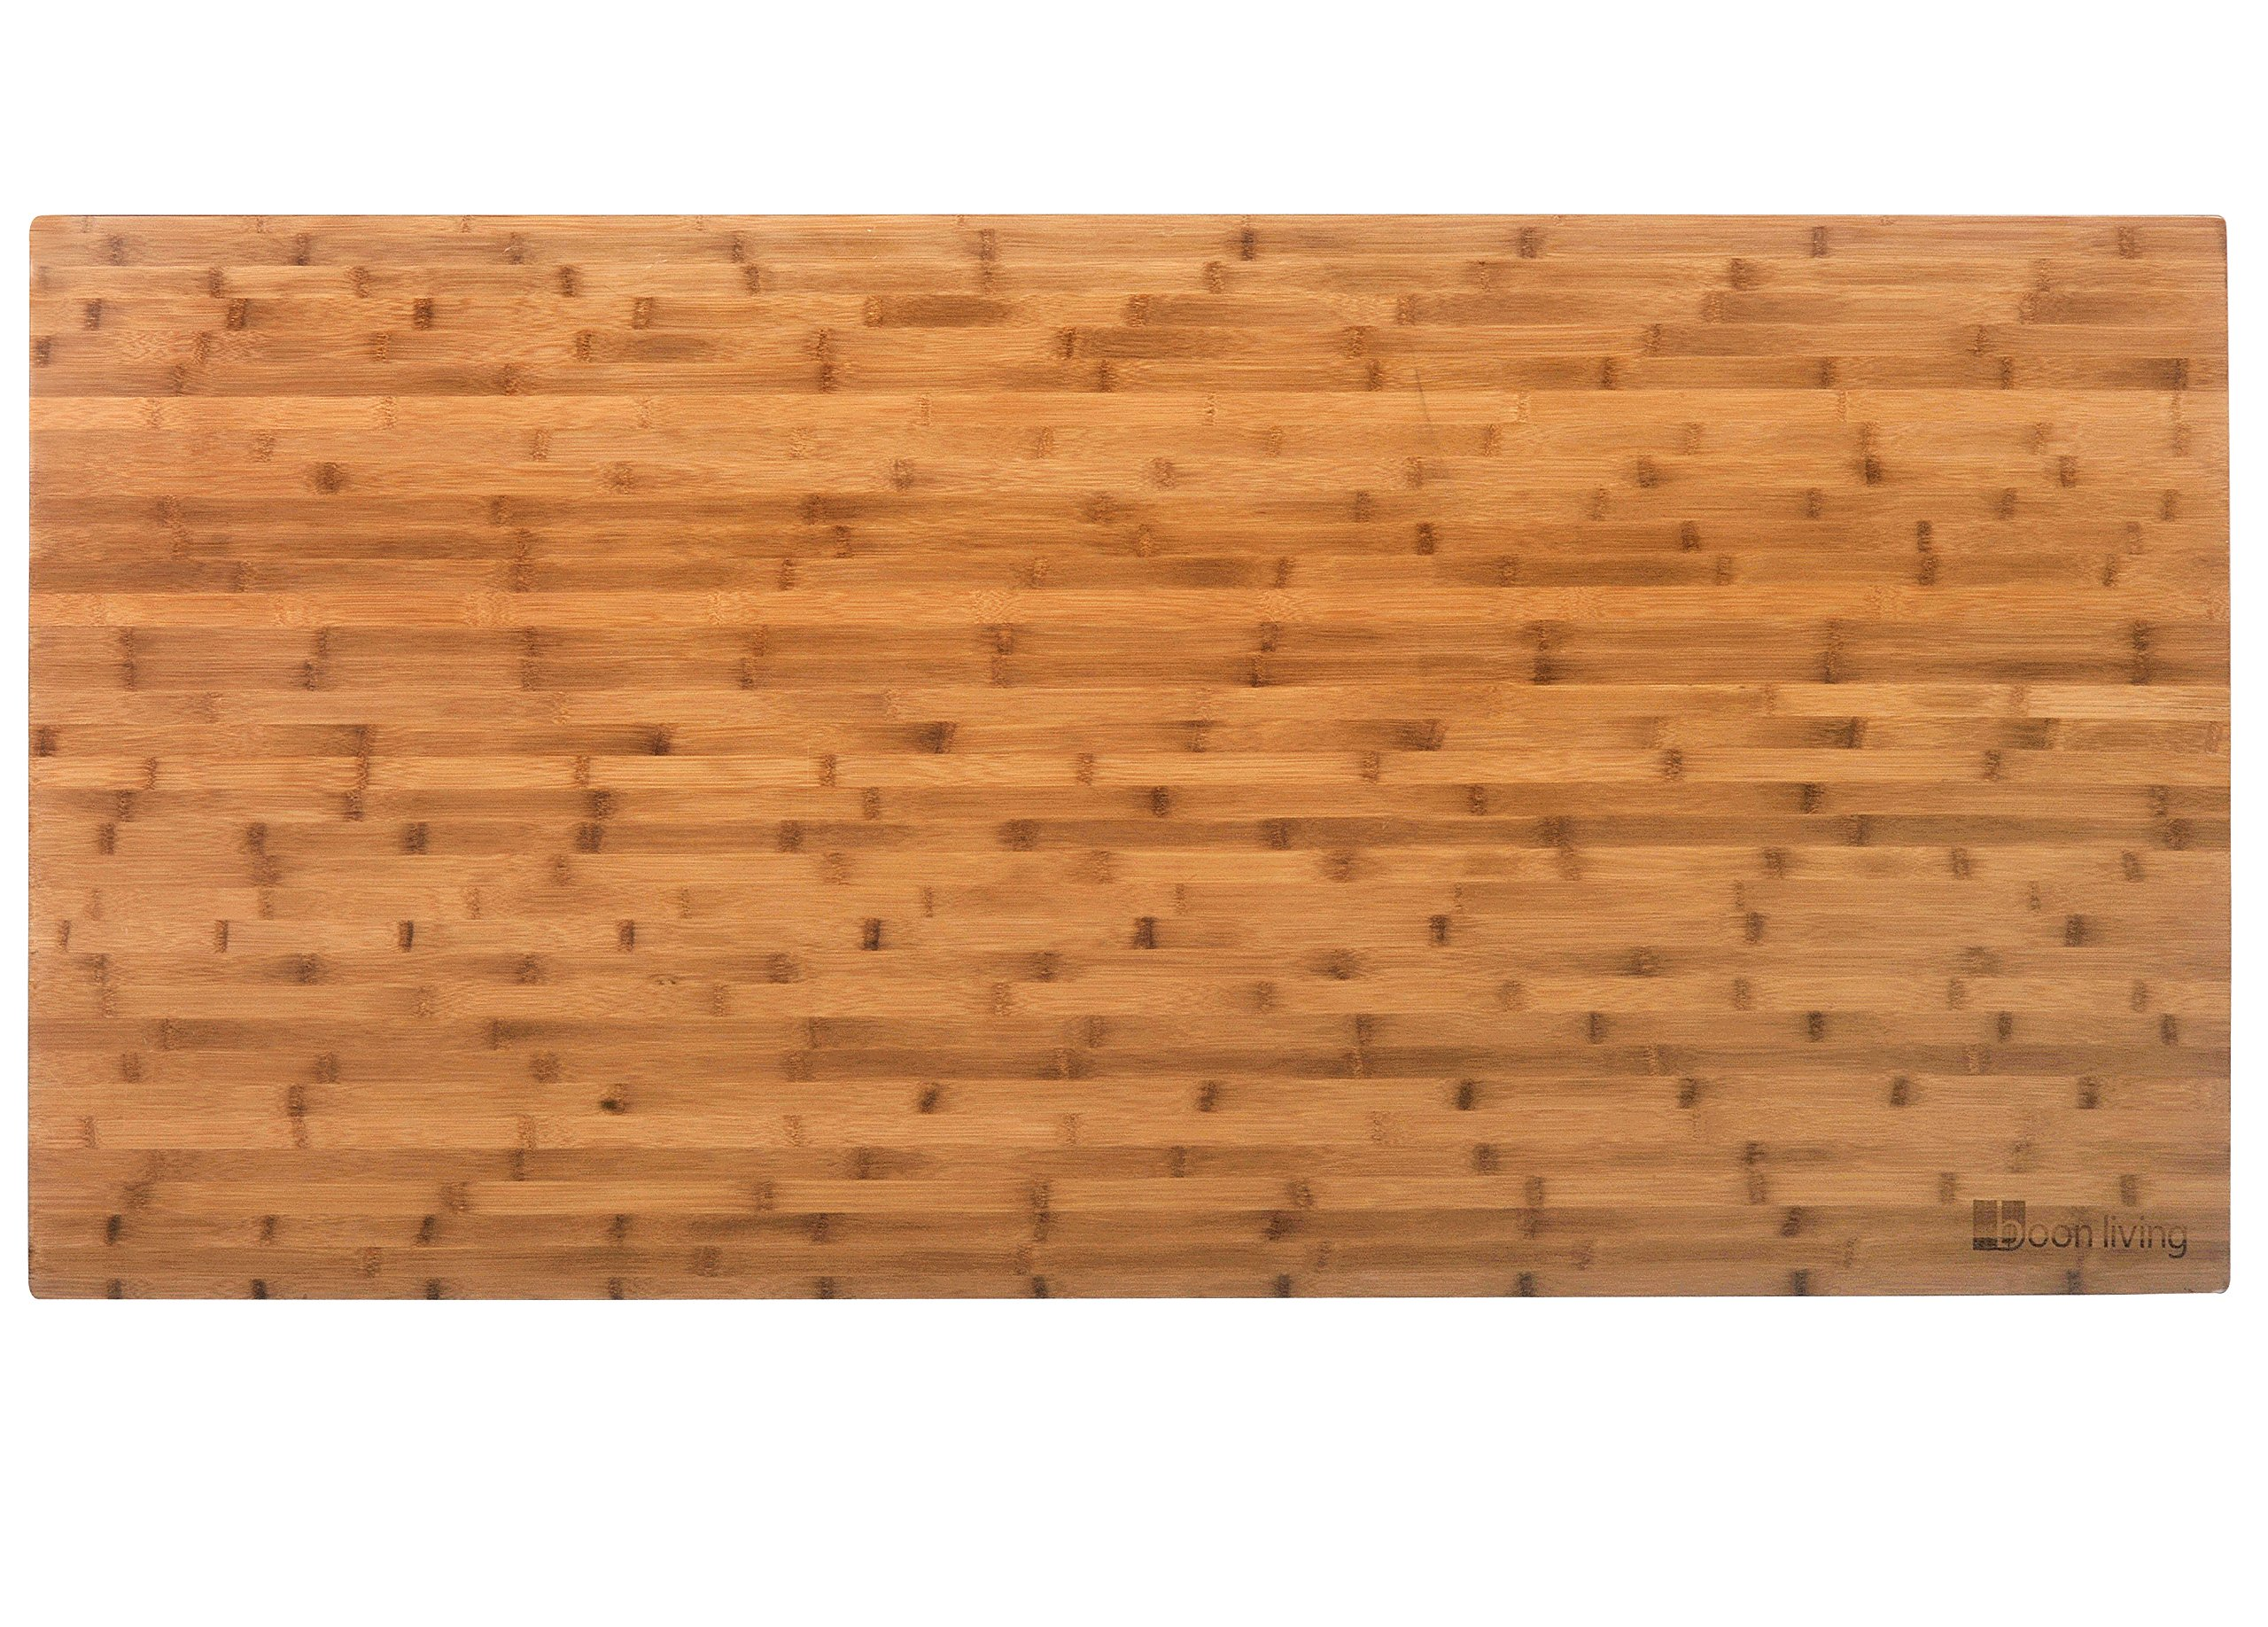 Boonliving Eco-Friendly Natural Bamboo Tabletop, 30'' x 60'', Parallel